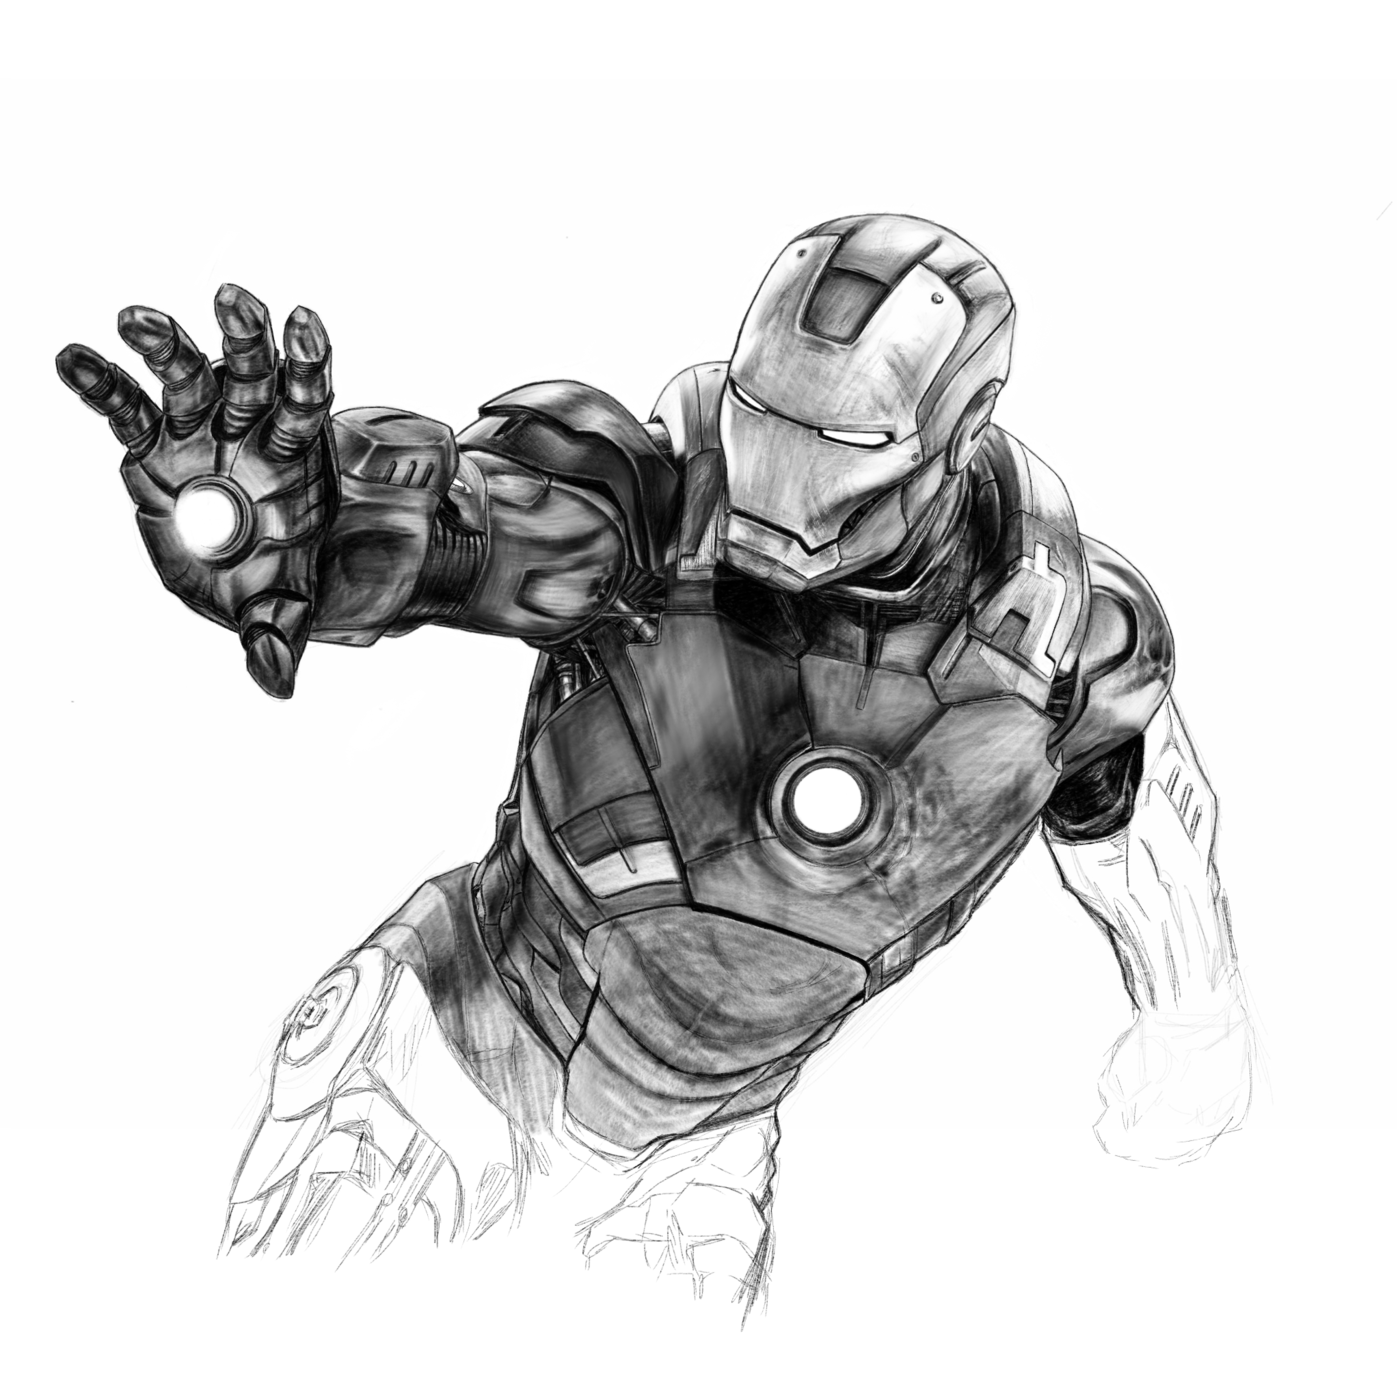 Iron Man Sketch By Mike McCroskery At Coroflot.com